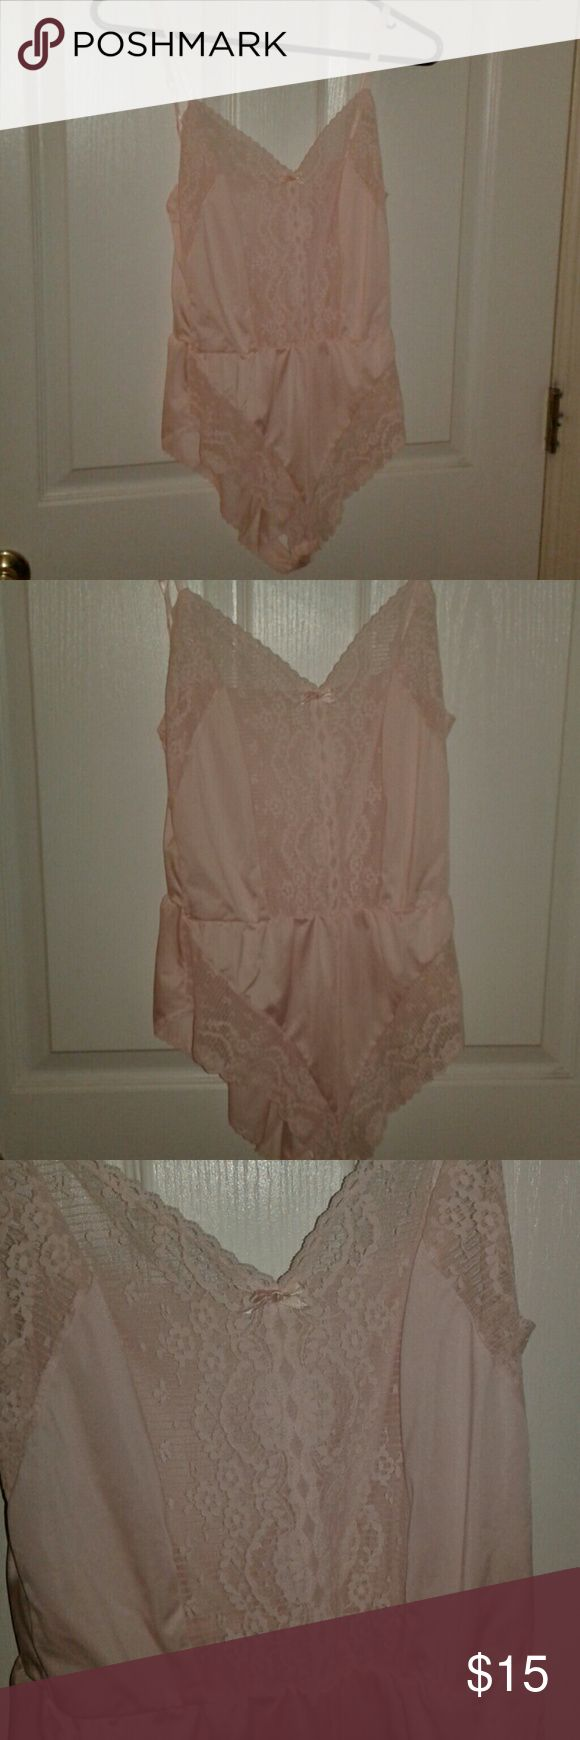 Playtex baby doll lingerie size M Adorable sofy pink baby doll lingerie.spagetti strap and sexy.lace,gathered waist pantie fit all in one Playtex Intimates & Sleepwear Chemises & Slips